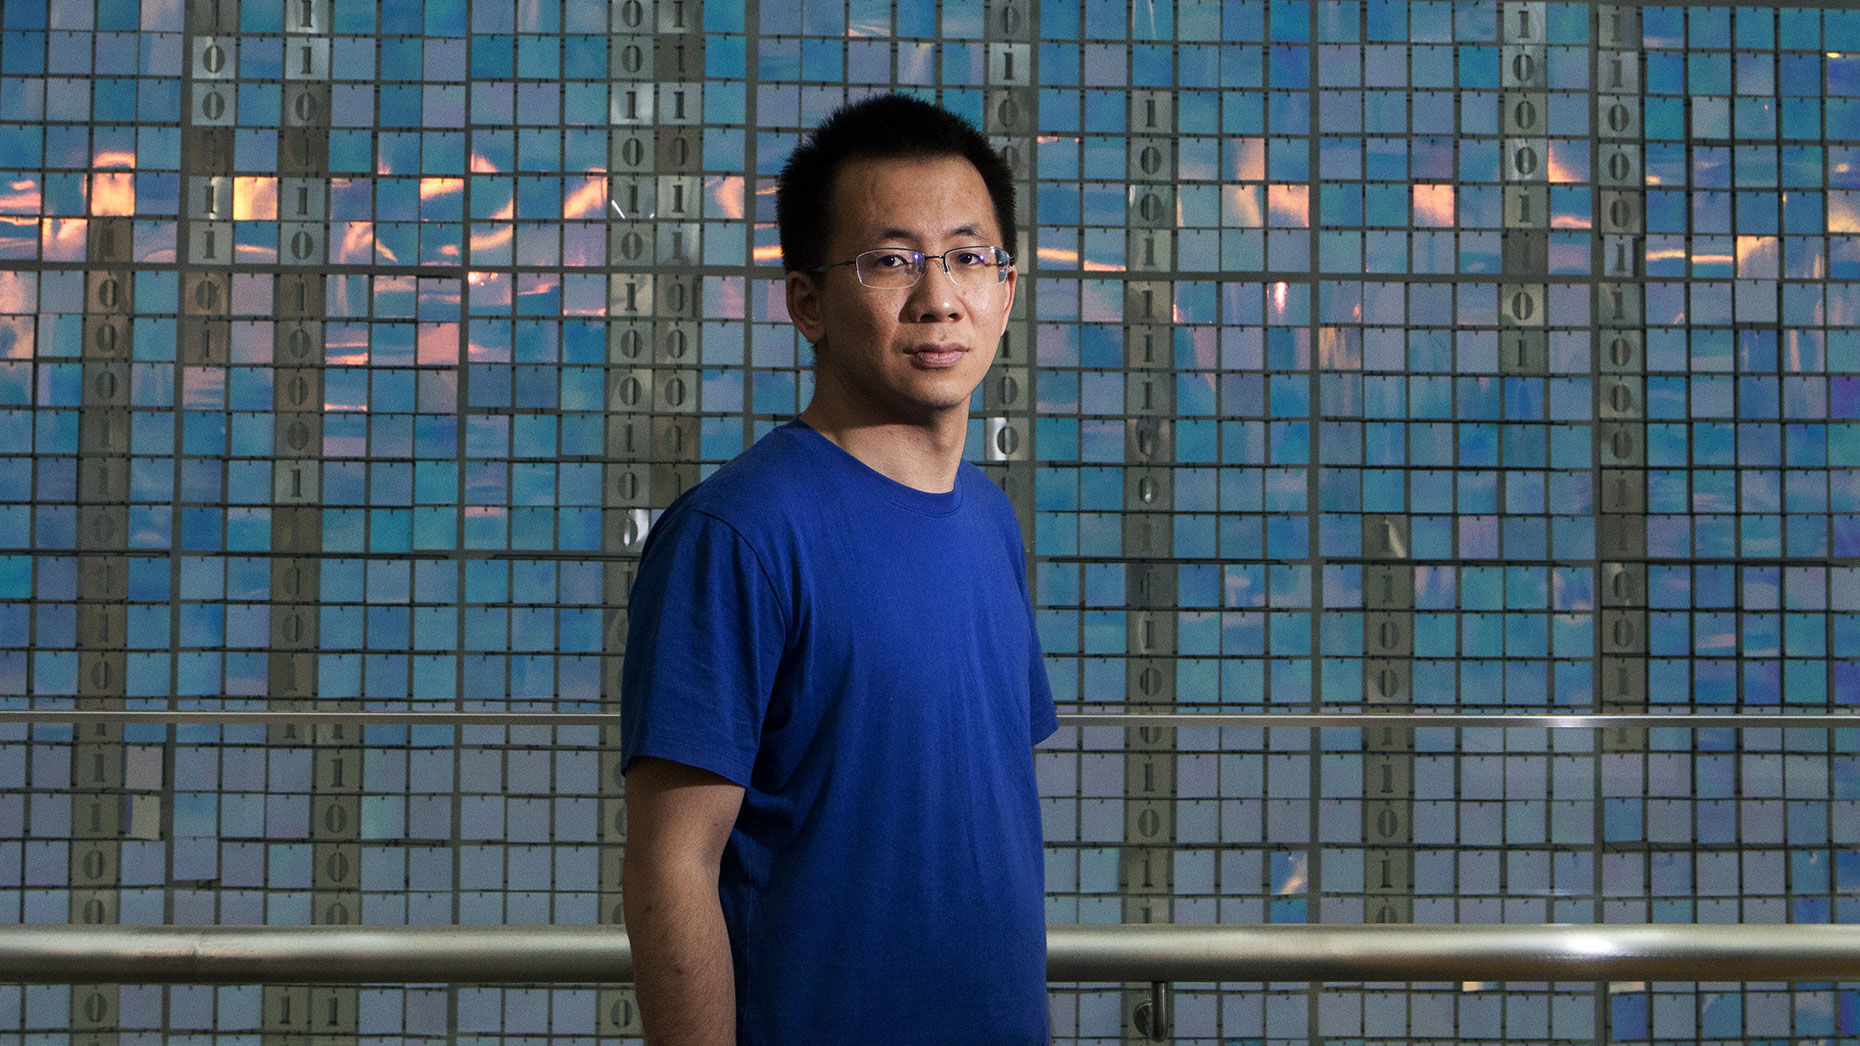 Bytedance co-founder Zhang Yiming. Photo by Bloomberg